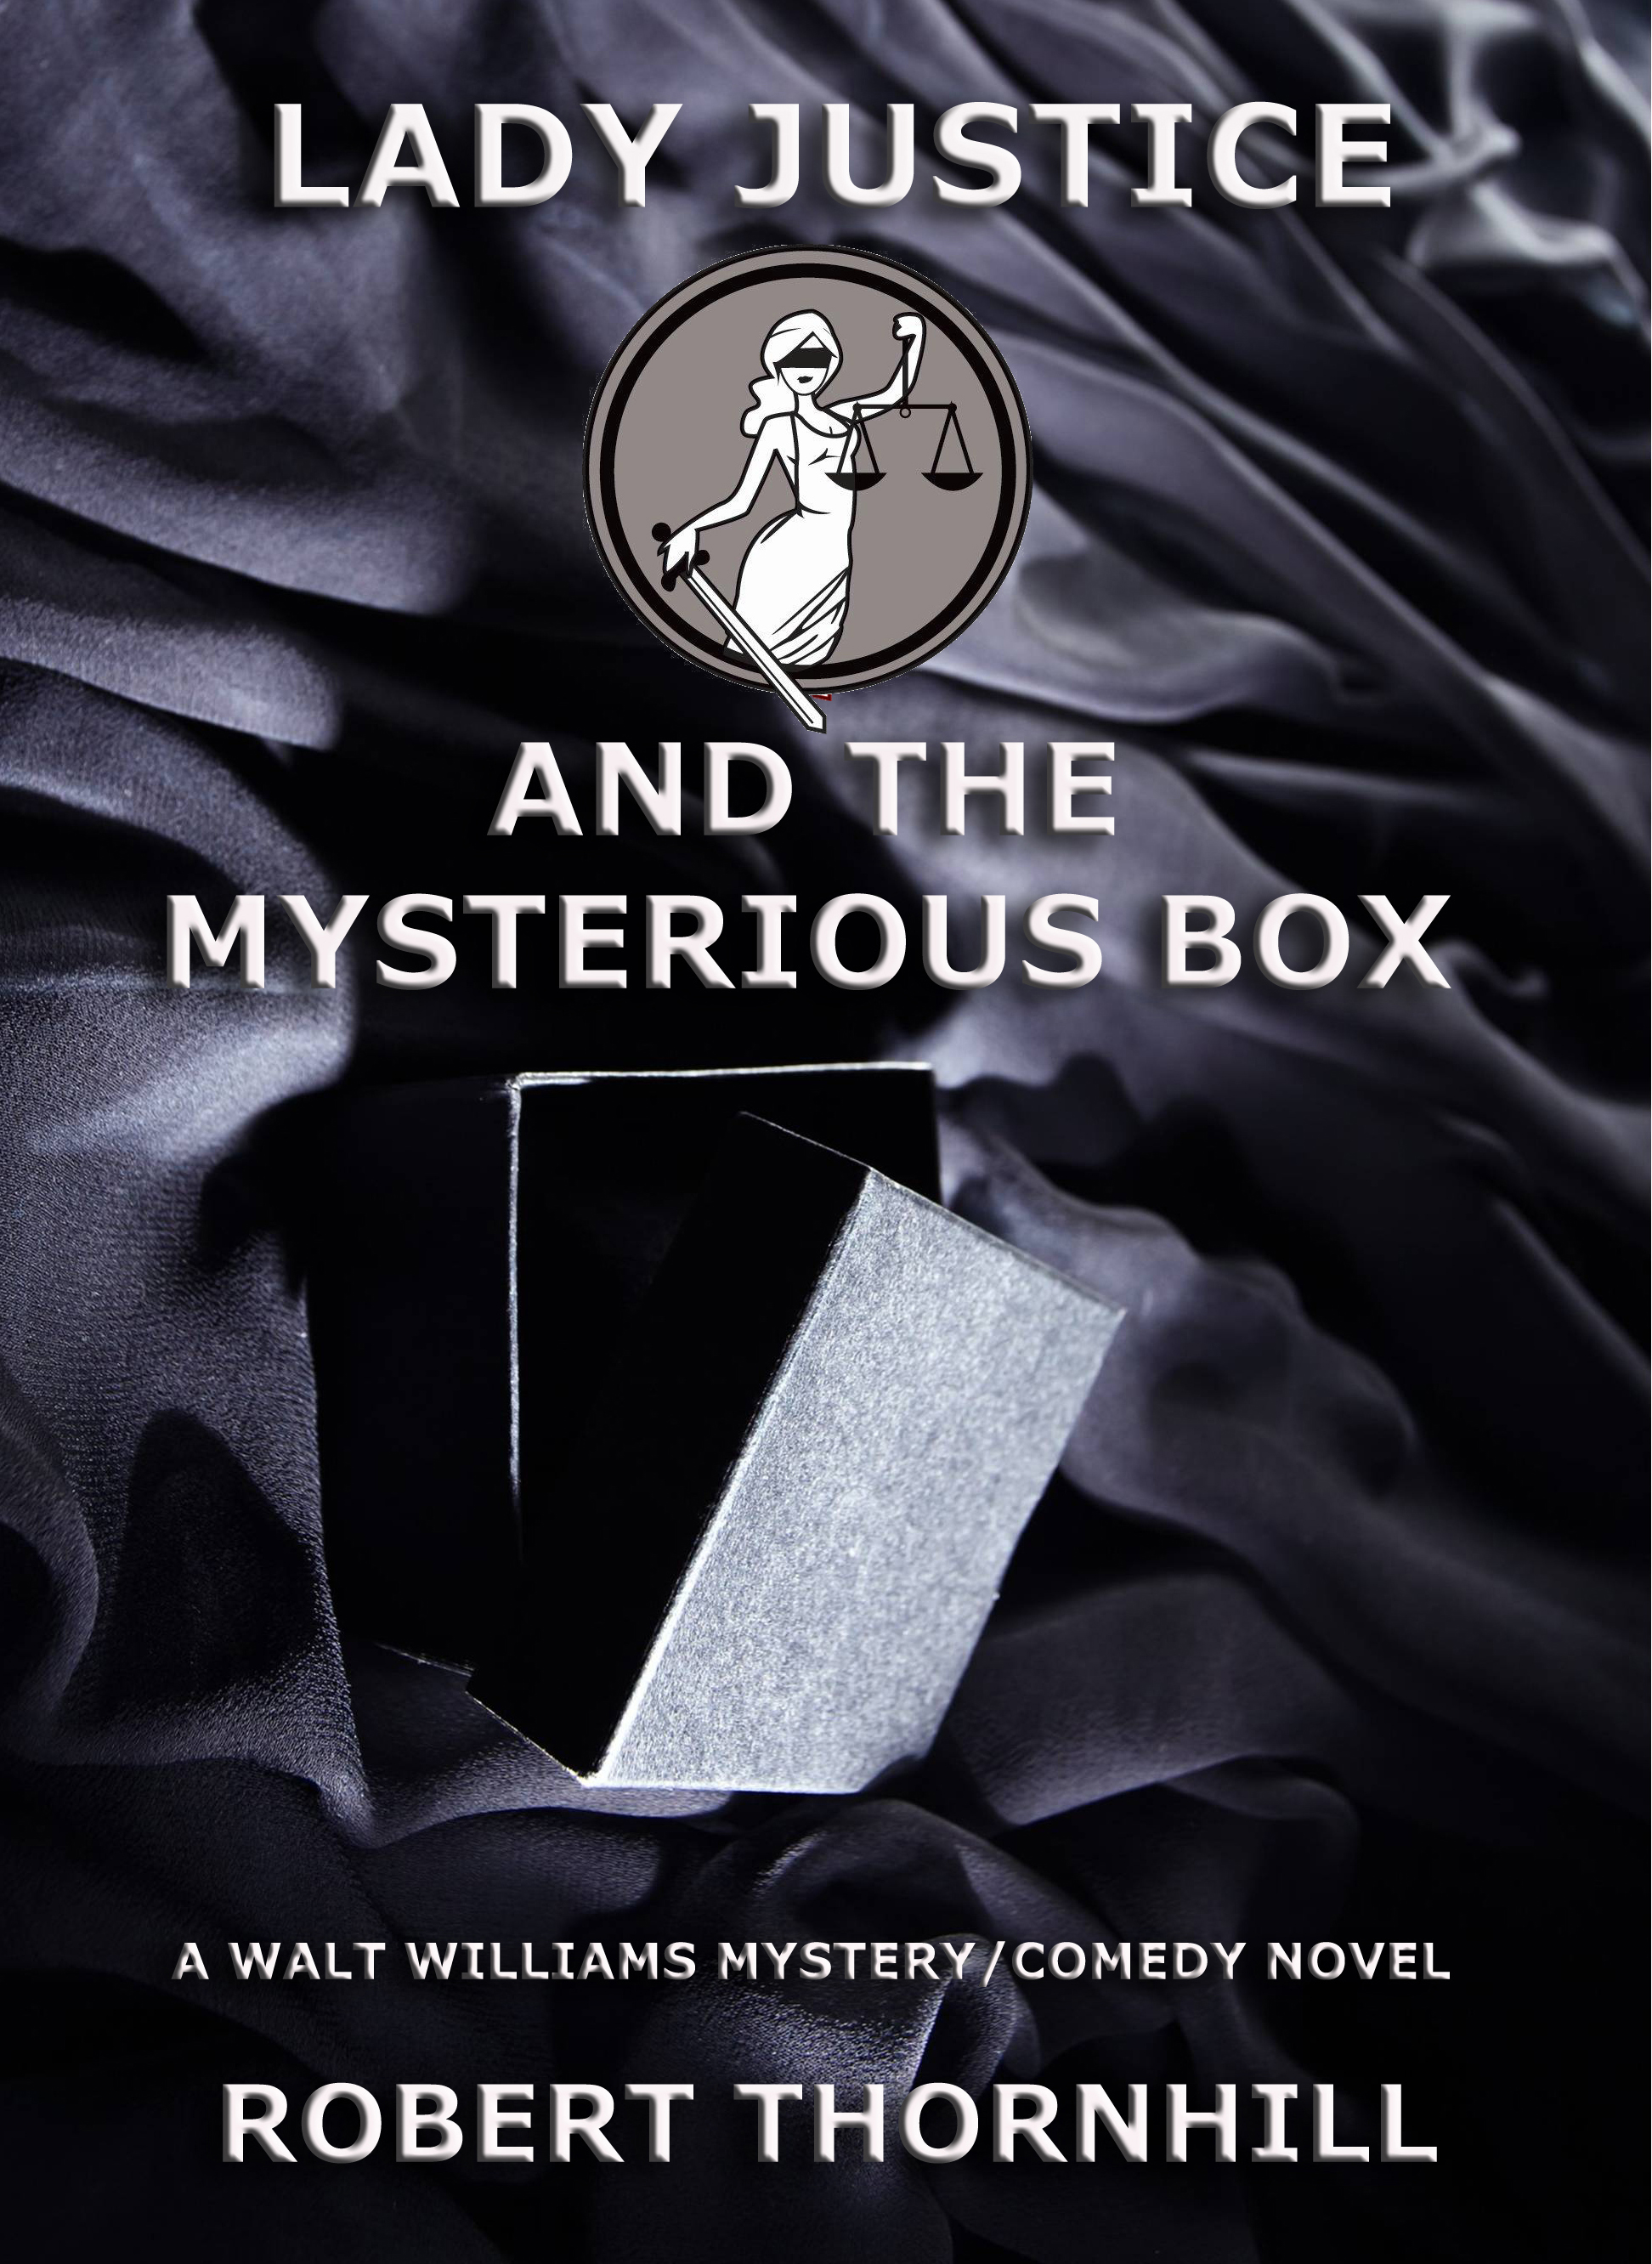 The Lady Justice Mystery/Comedy Series